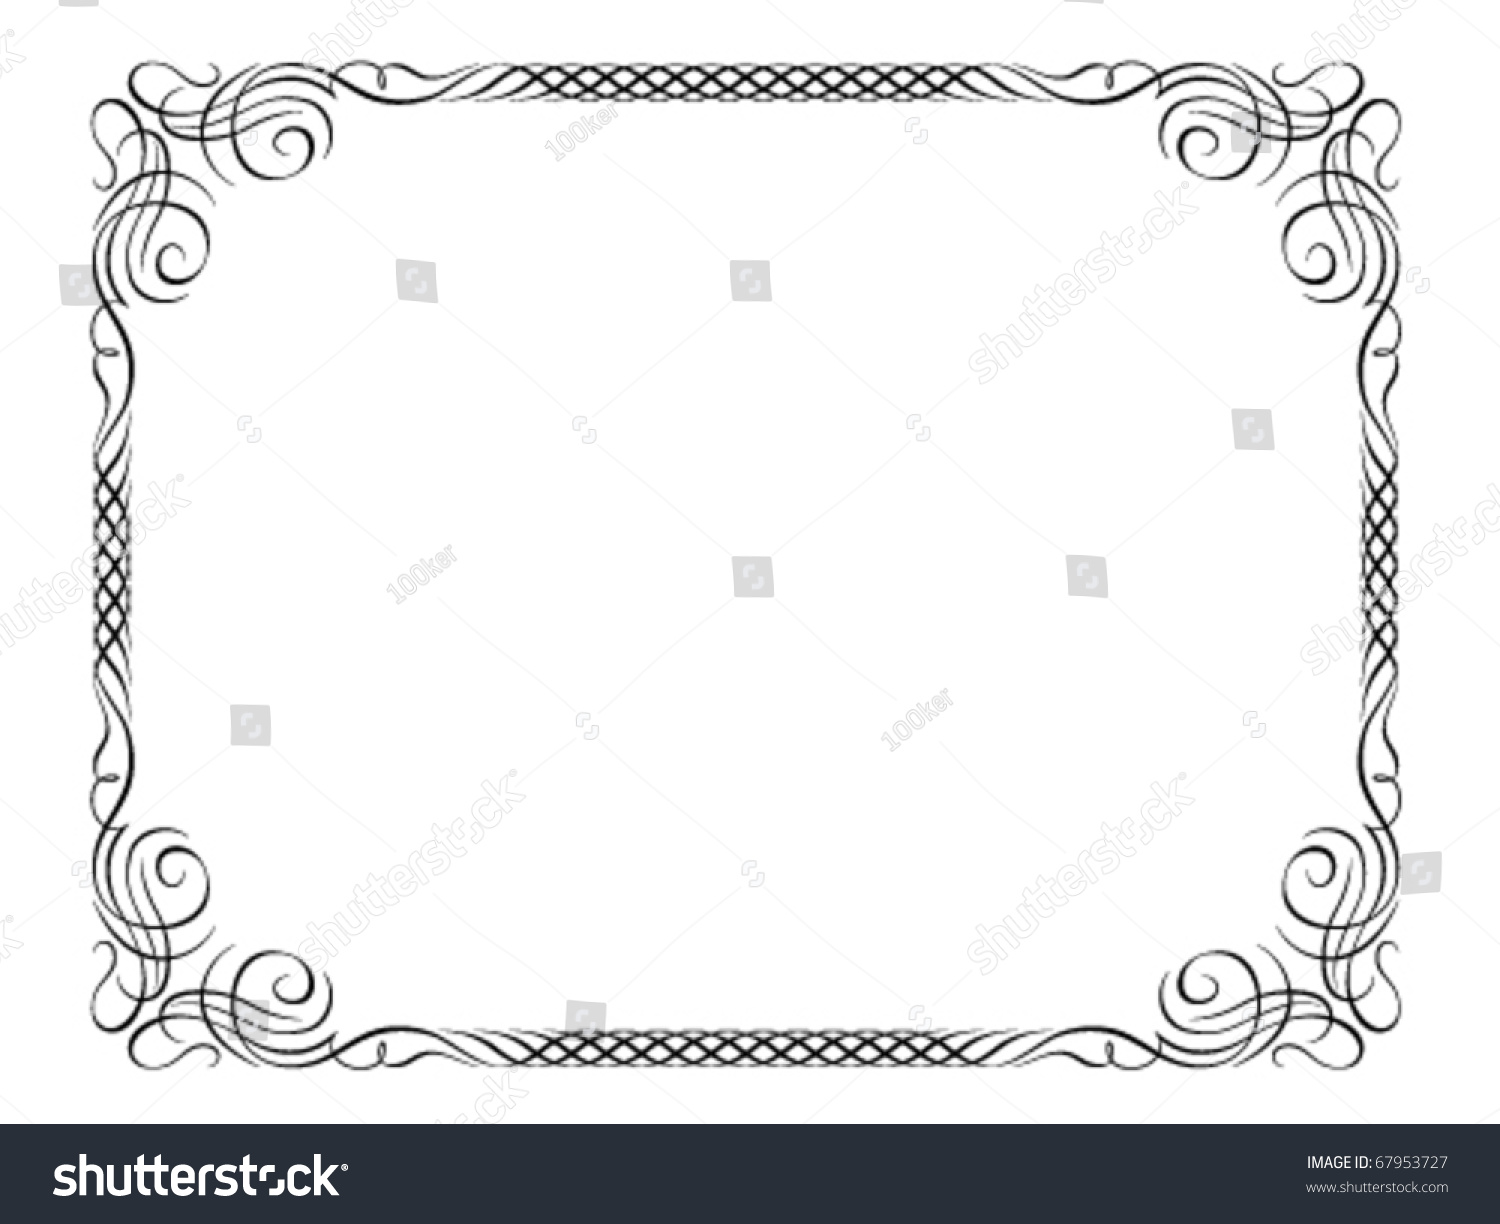 vector calligraphy ornamental penmanship decorative frame not trace use it by part